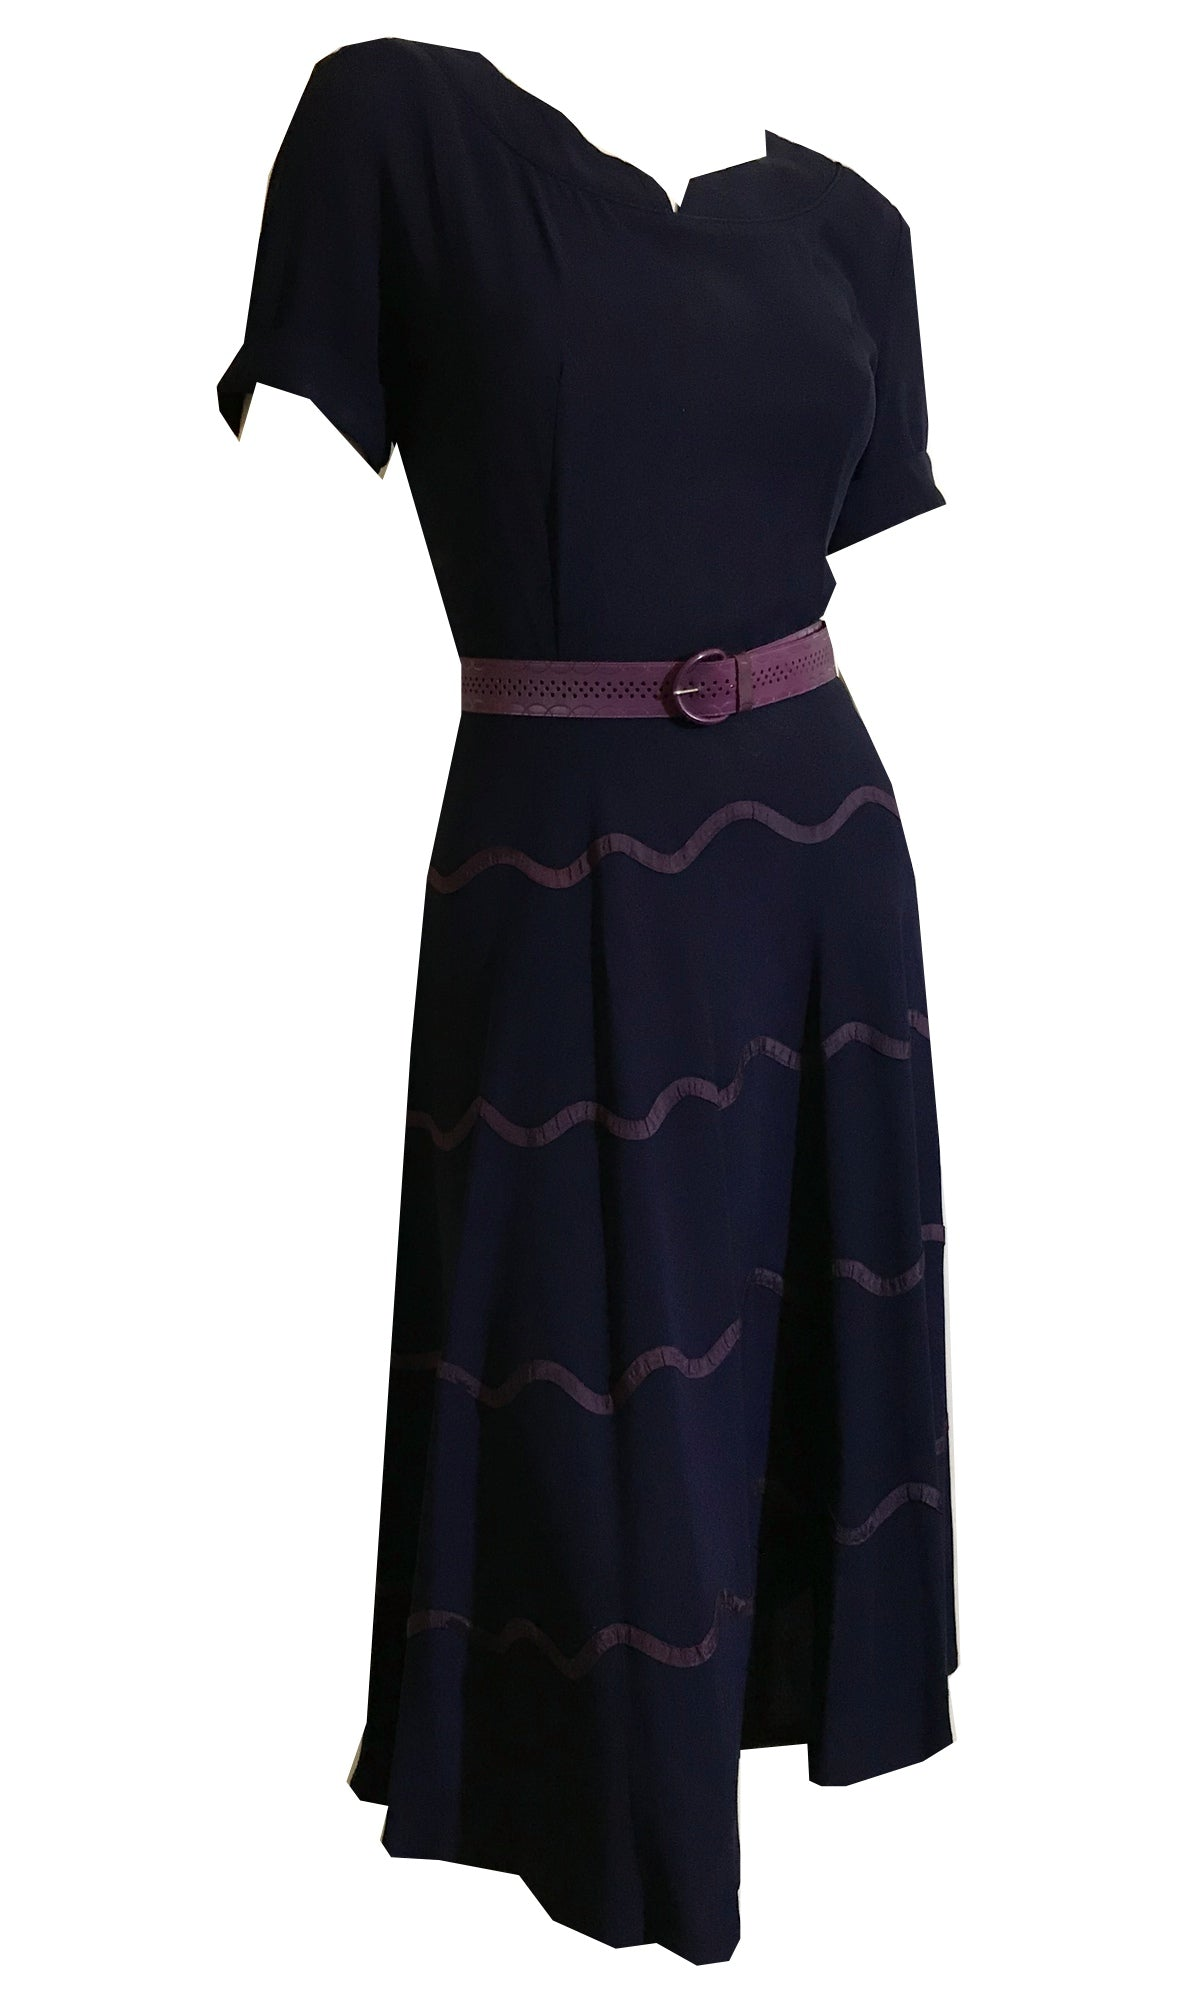 Navy Blue Crepe Rayon Dress with Purple Wave Ribbons on Skirt circa 1940s